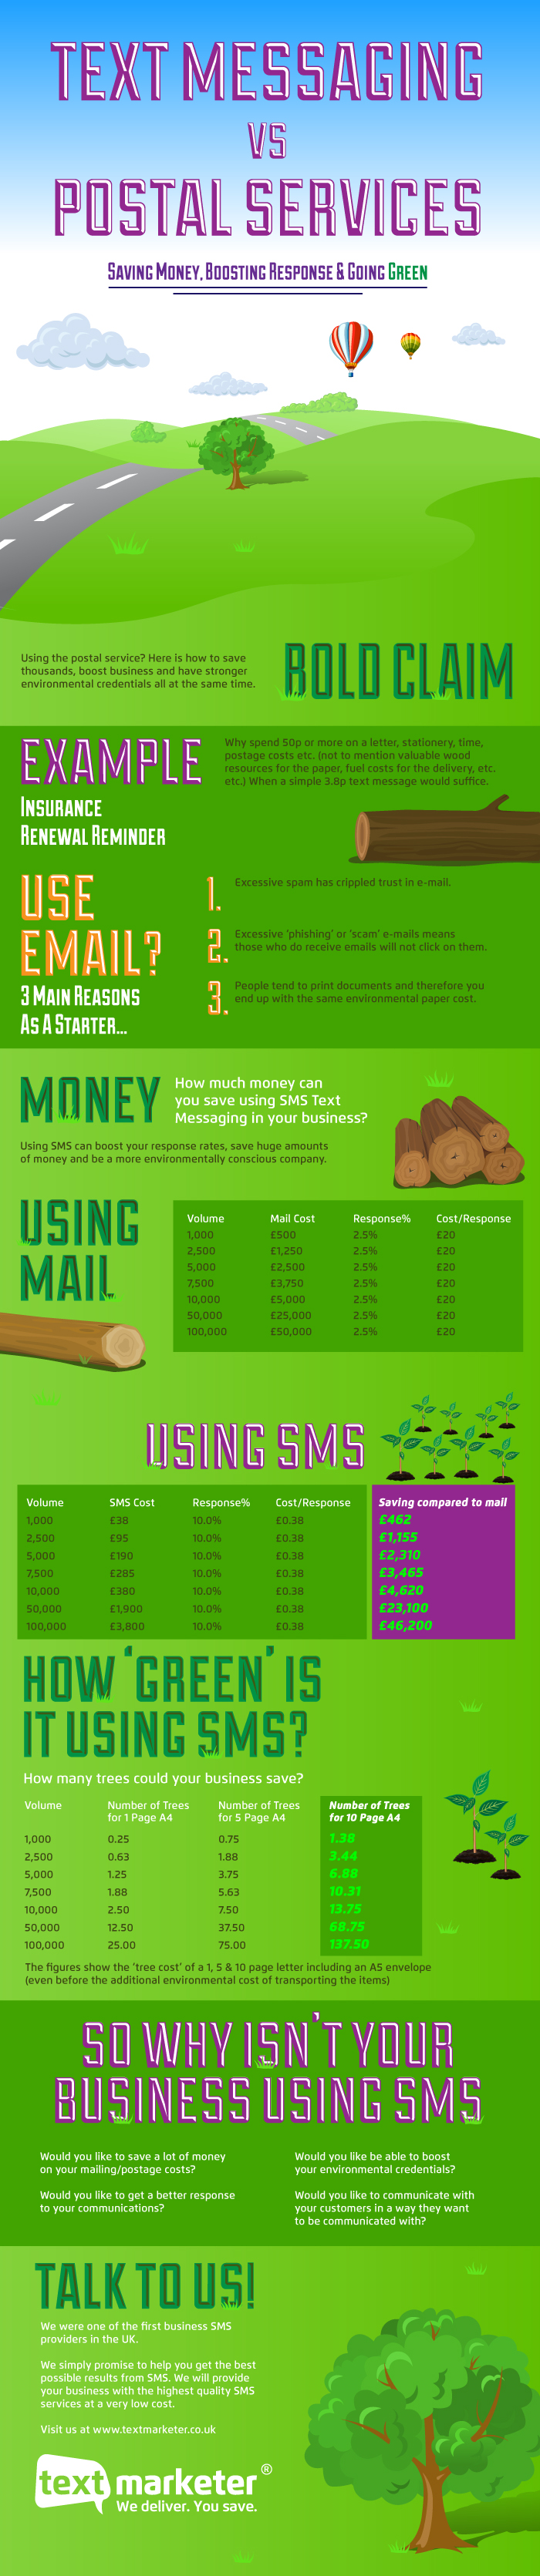 Text Marketing VS Postal Mail - Infographic